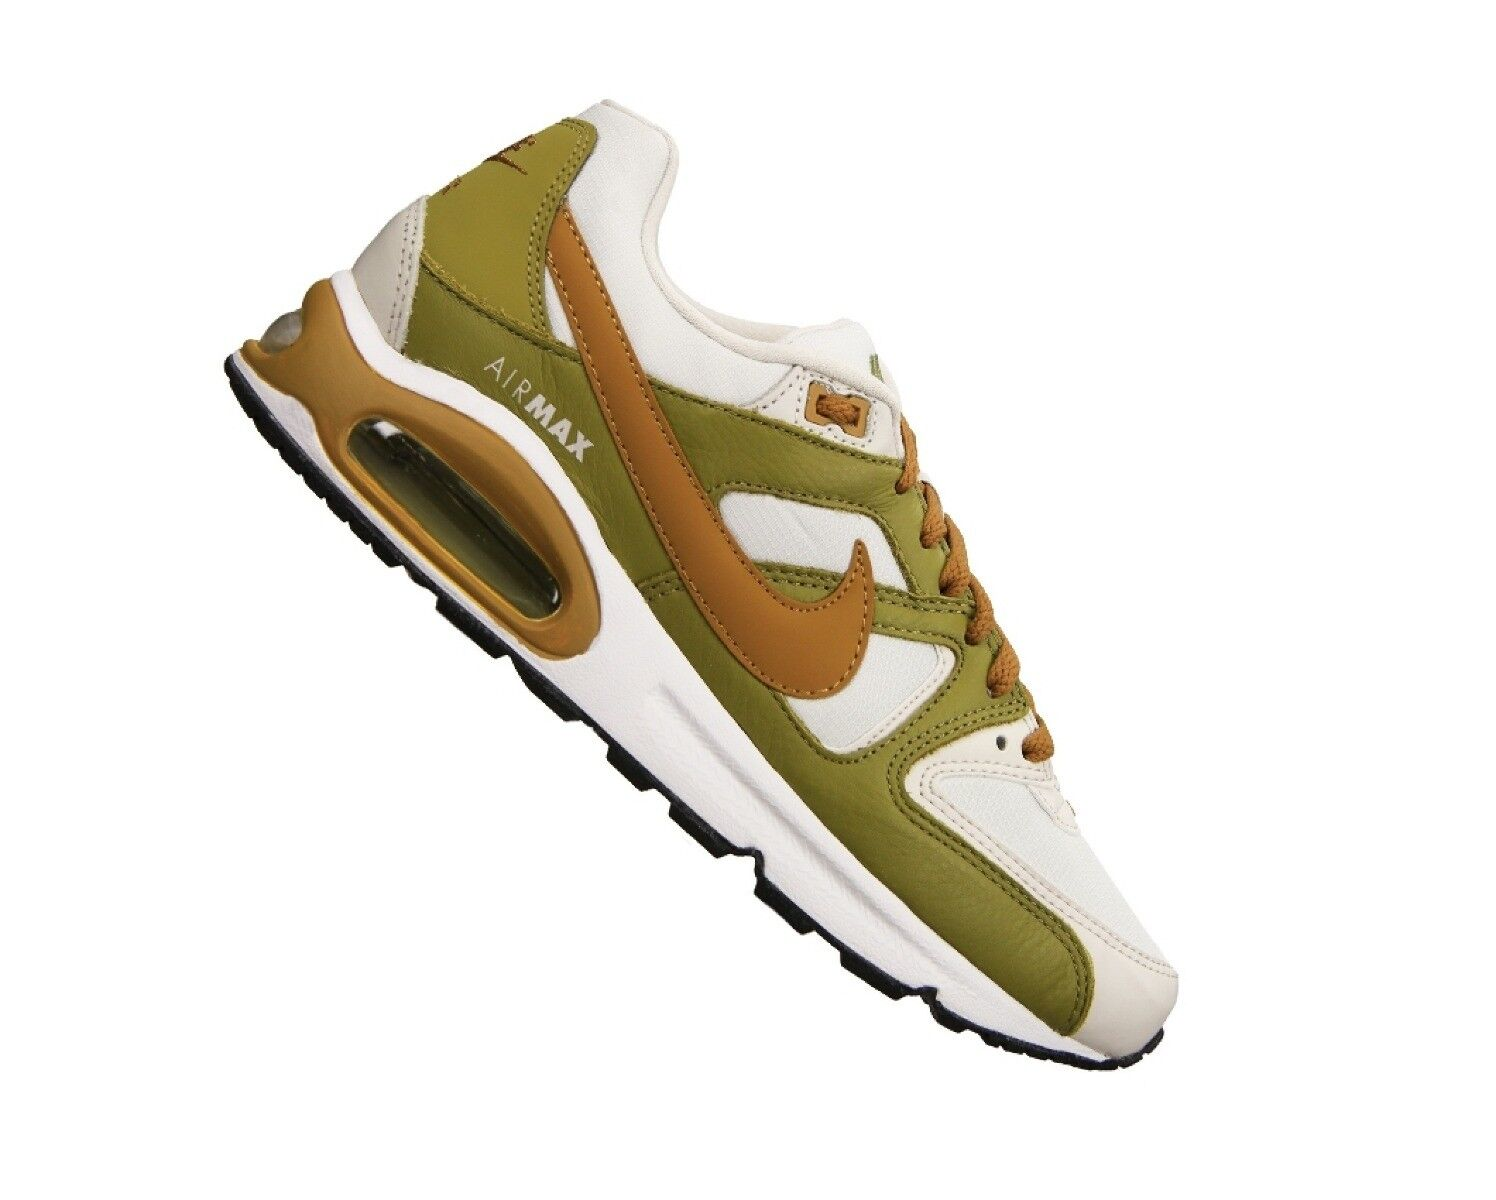 NIKE AIR MAX COMMAND MENS RUNNING TRAINER SHOE UK SIZE 6